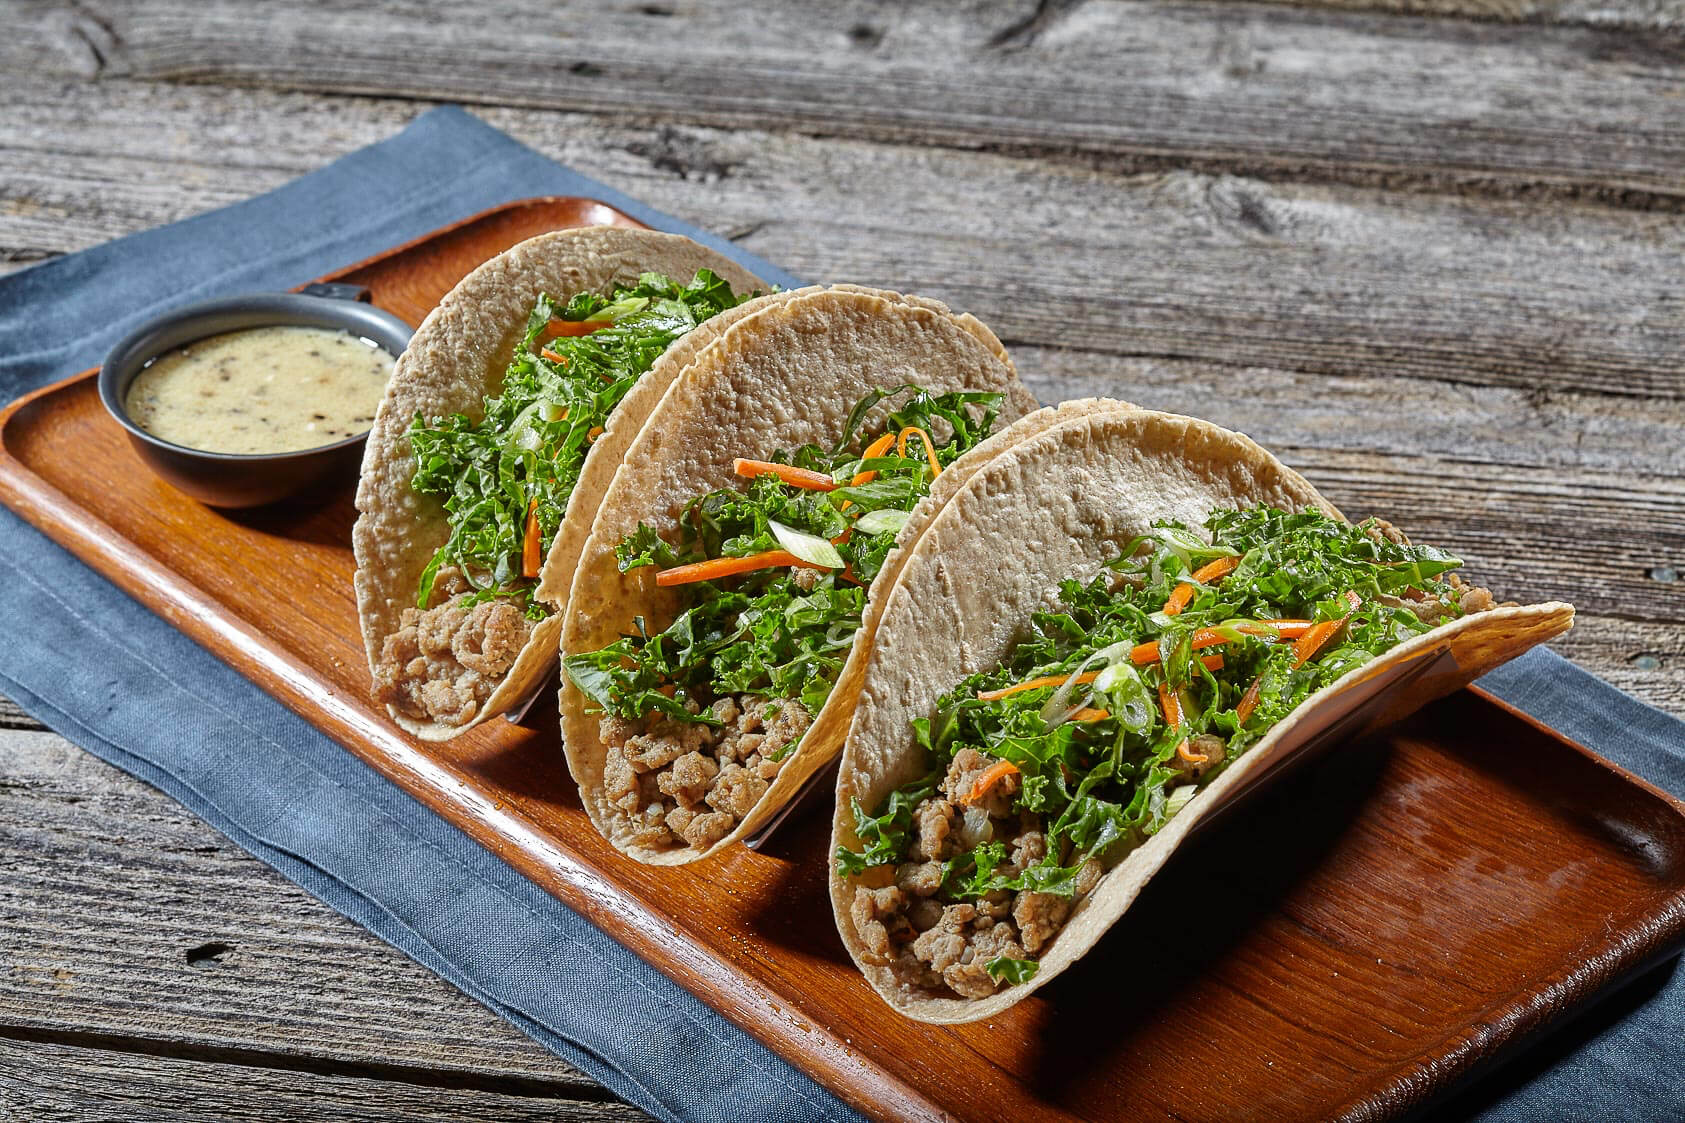 Ground Turkey Tacos with Kale Slaw Recipe Image